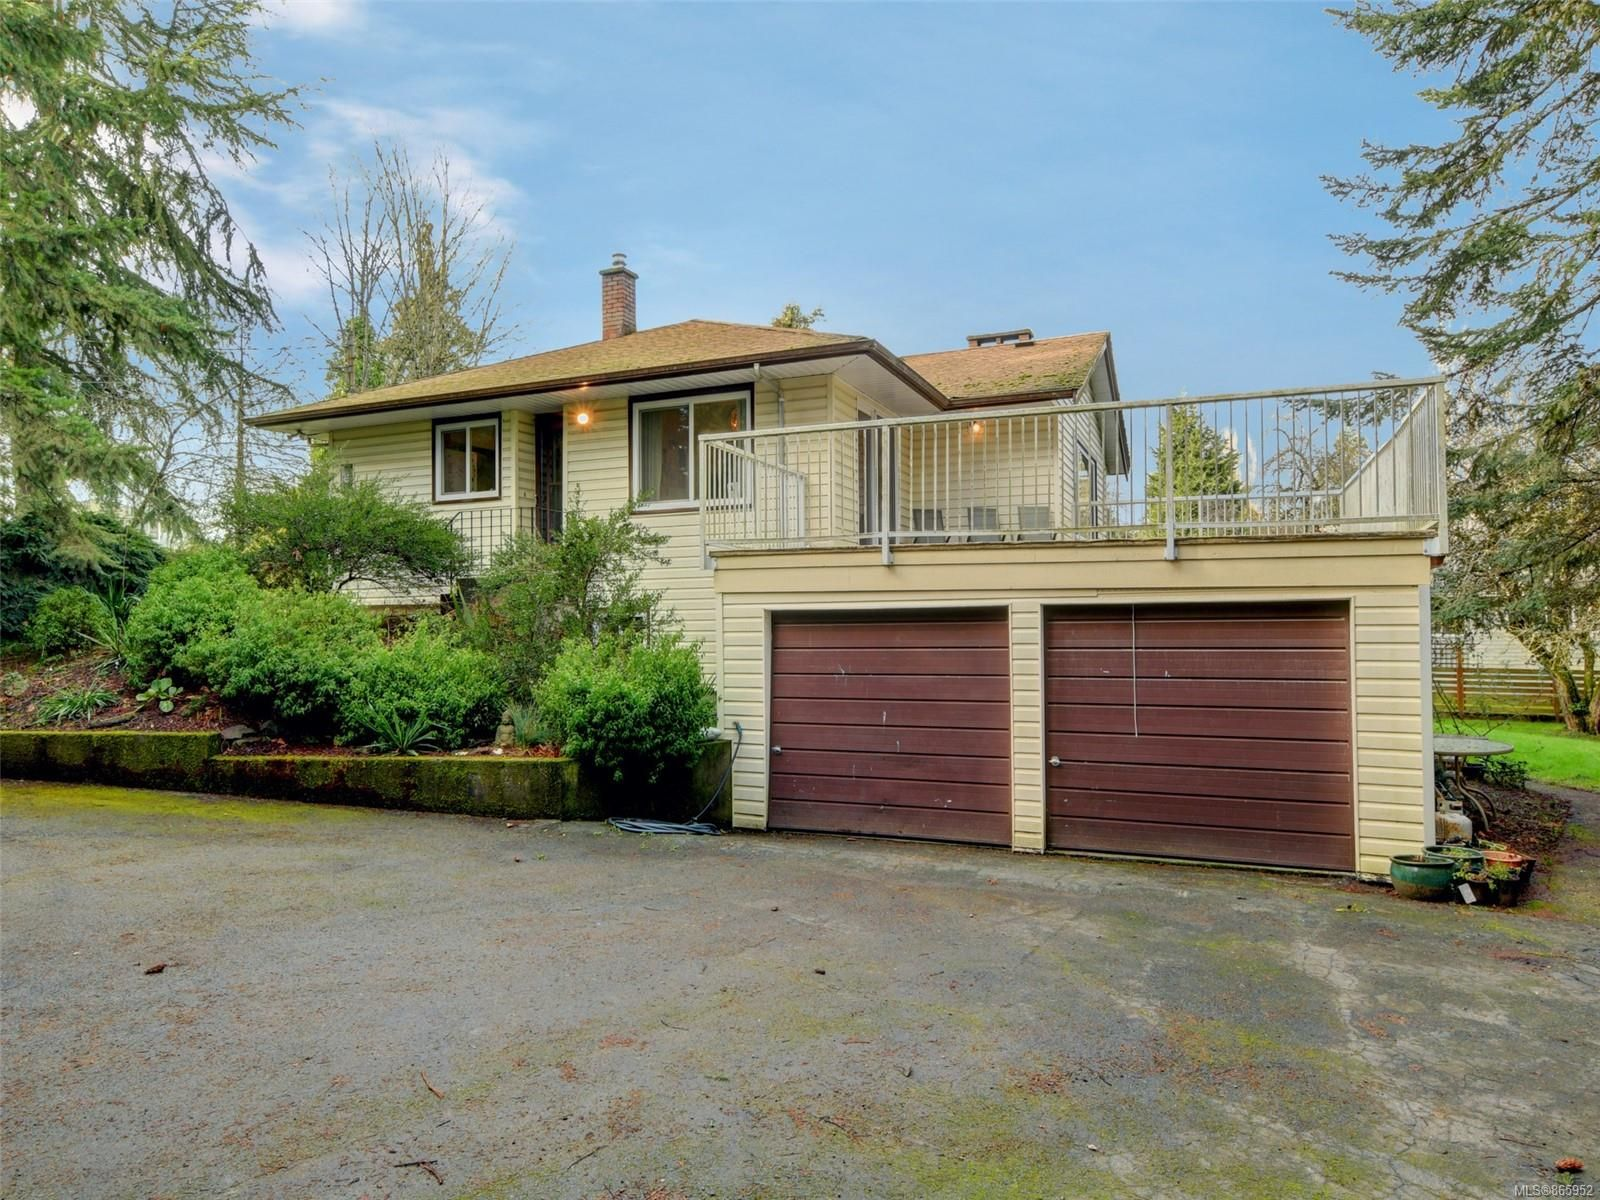 Main Photo: 7487 East Saanich Rd in : CS Saanichton House for sale (Central Saanich)  : MLS®# 865952